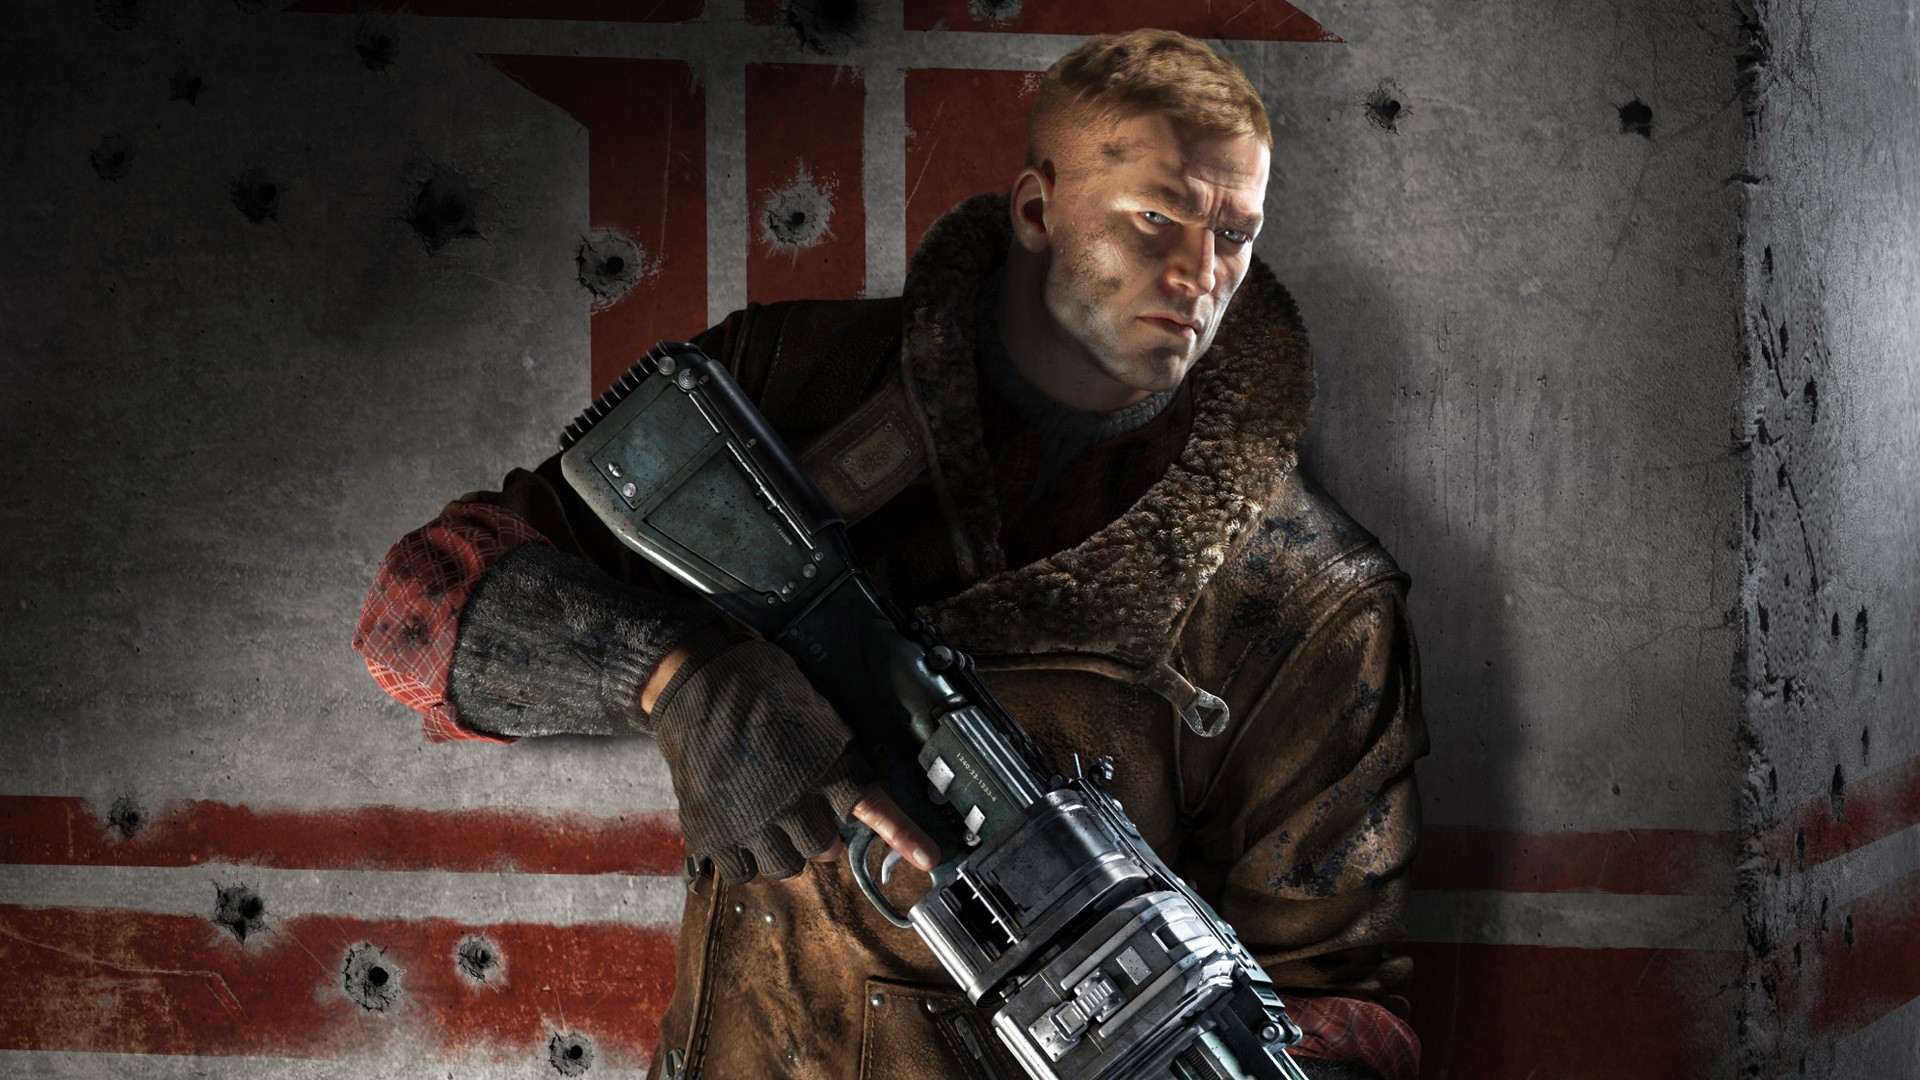 Wolfenstein The New Order Hd Wallpaper Wolfenstein The New Order Game Wallpapers Hd Wallpapers